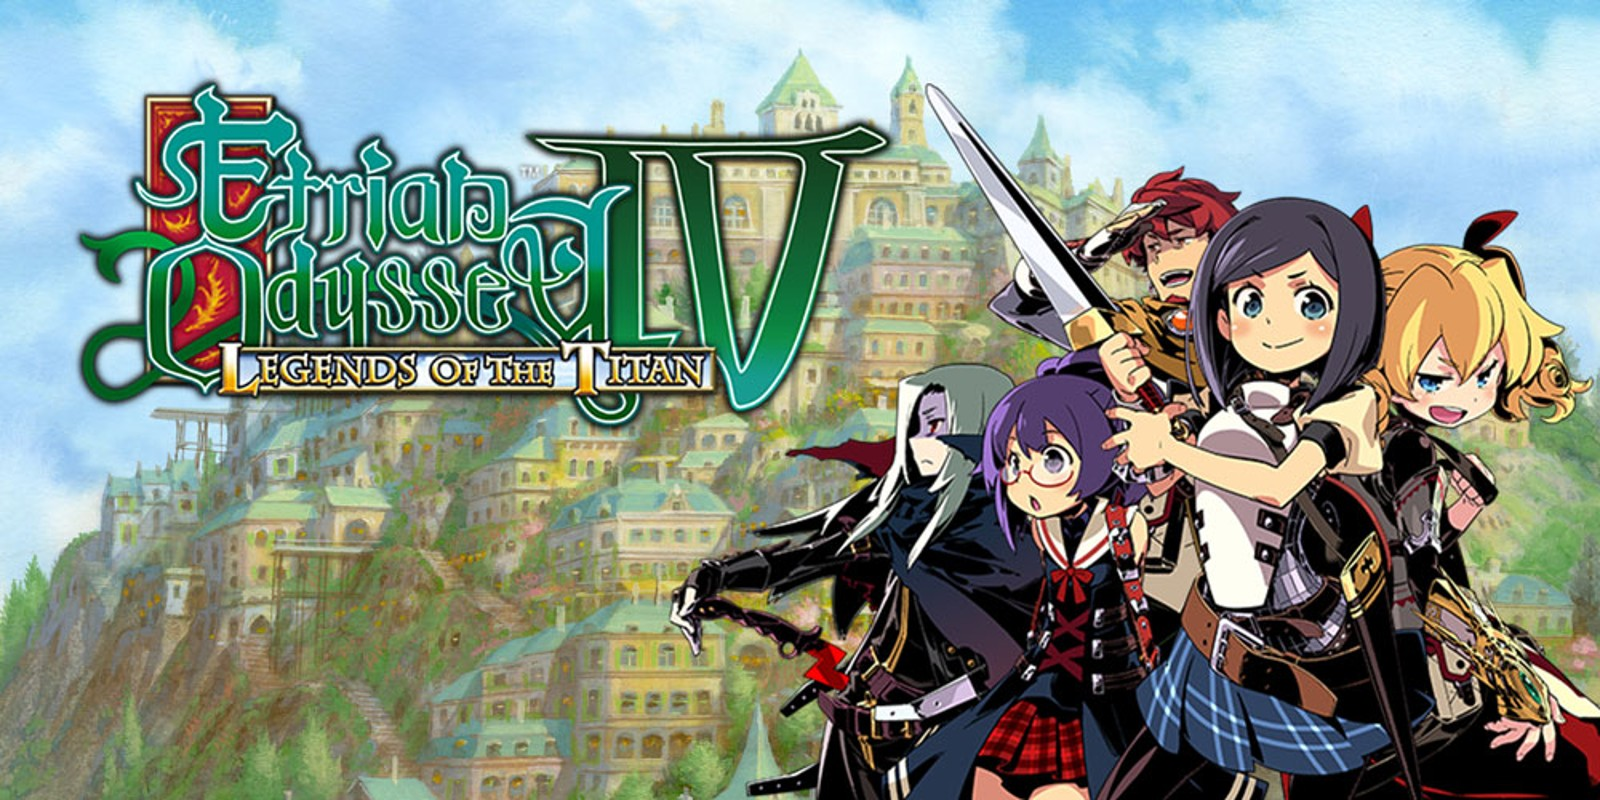 Etrian Odyssey™ IV: Legends of the Titan